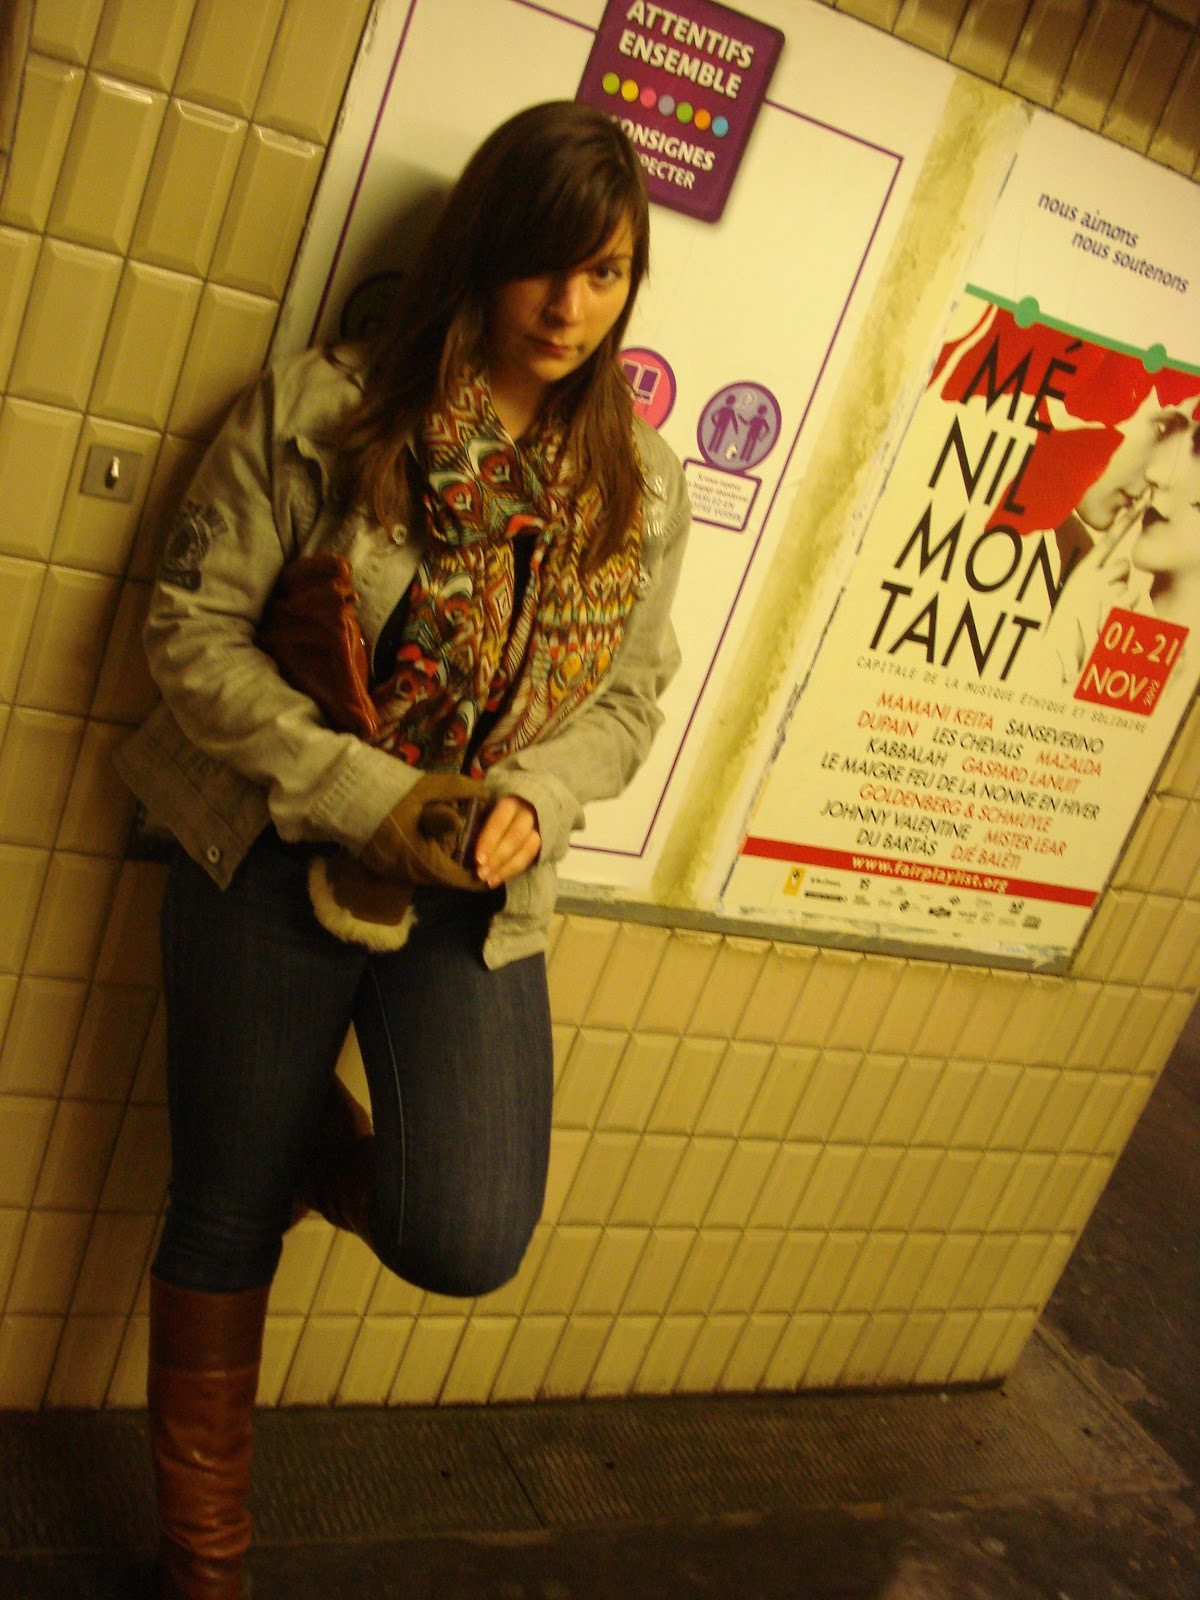 stylin' in the subway